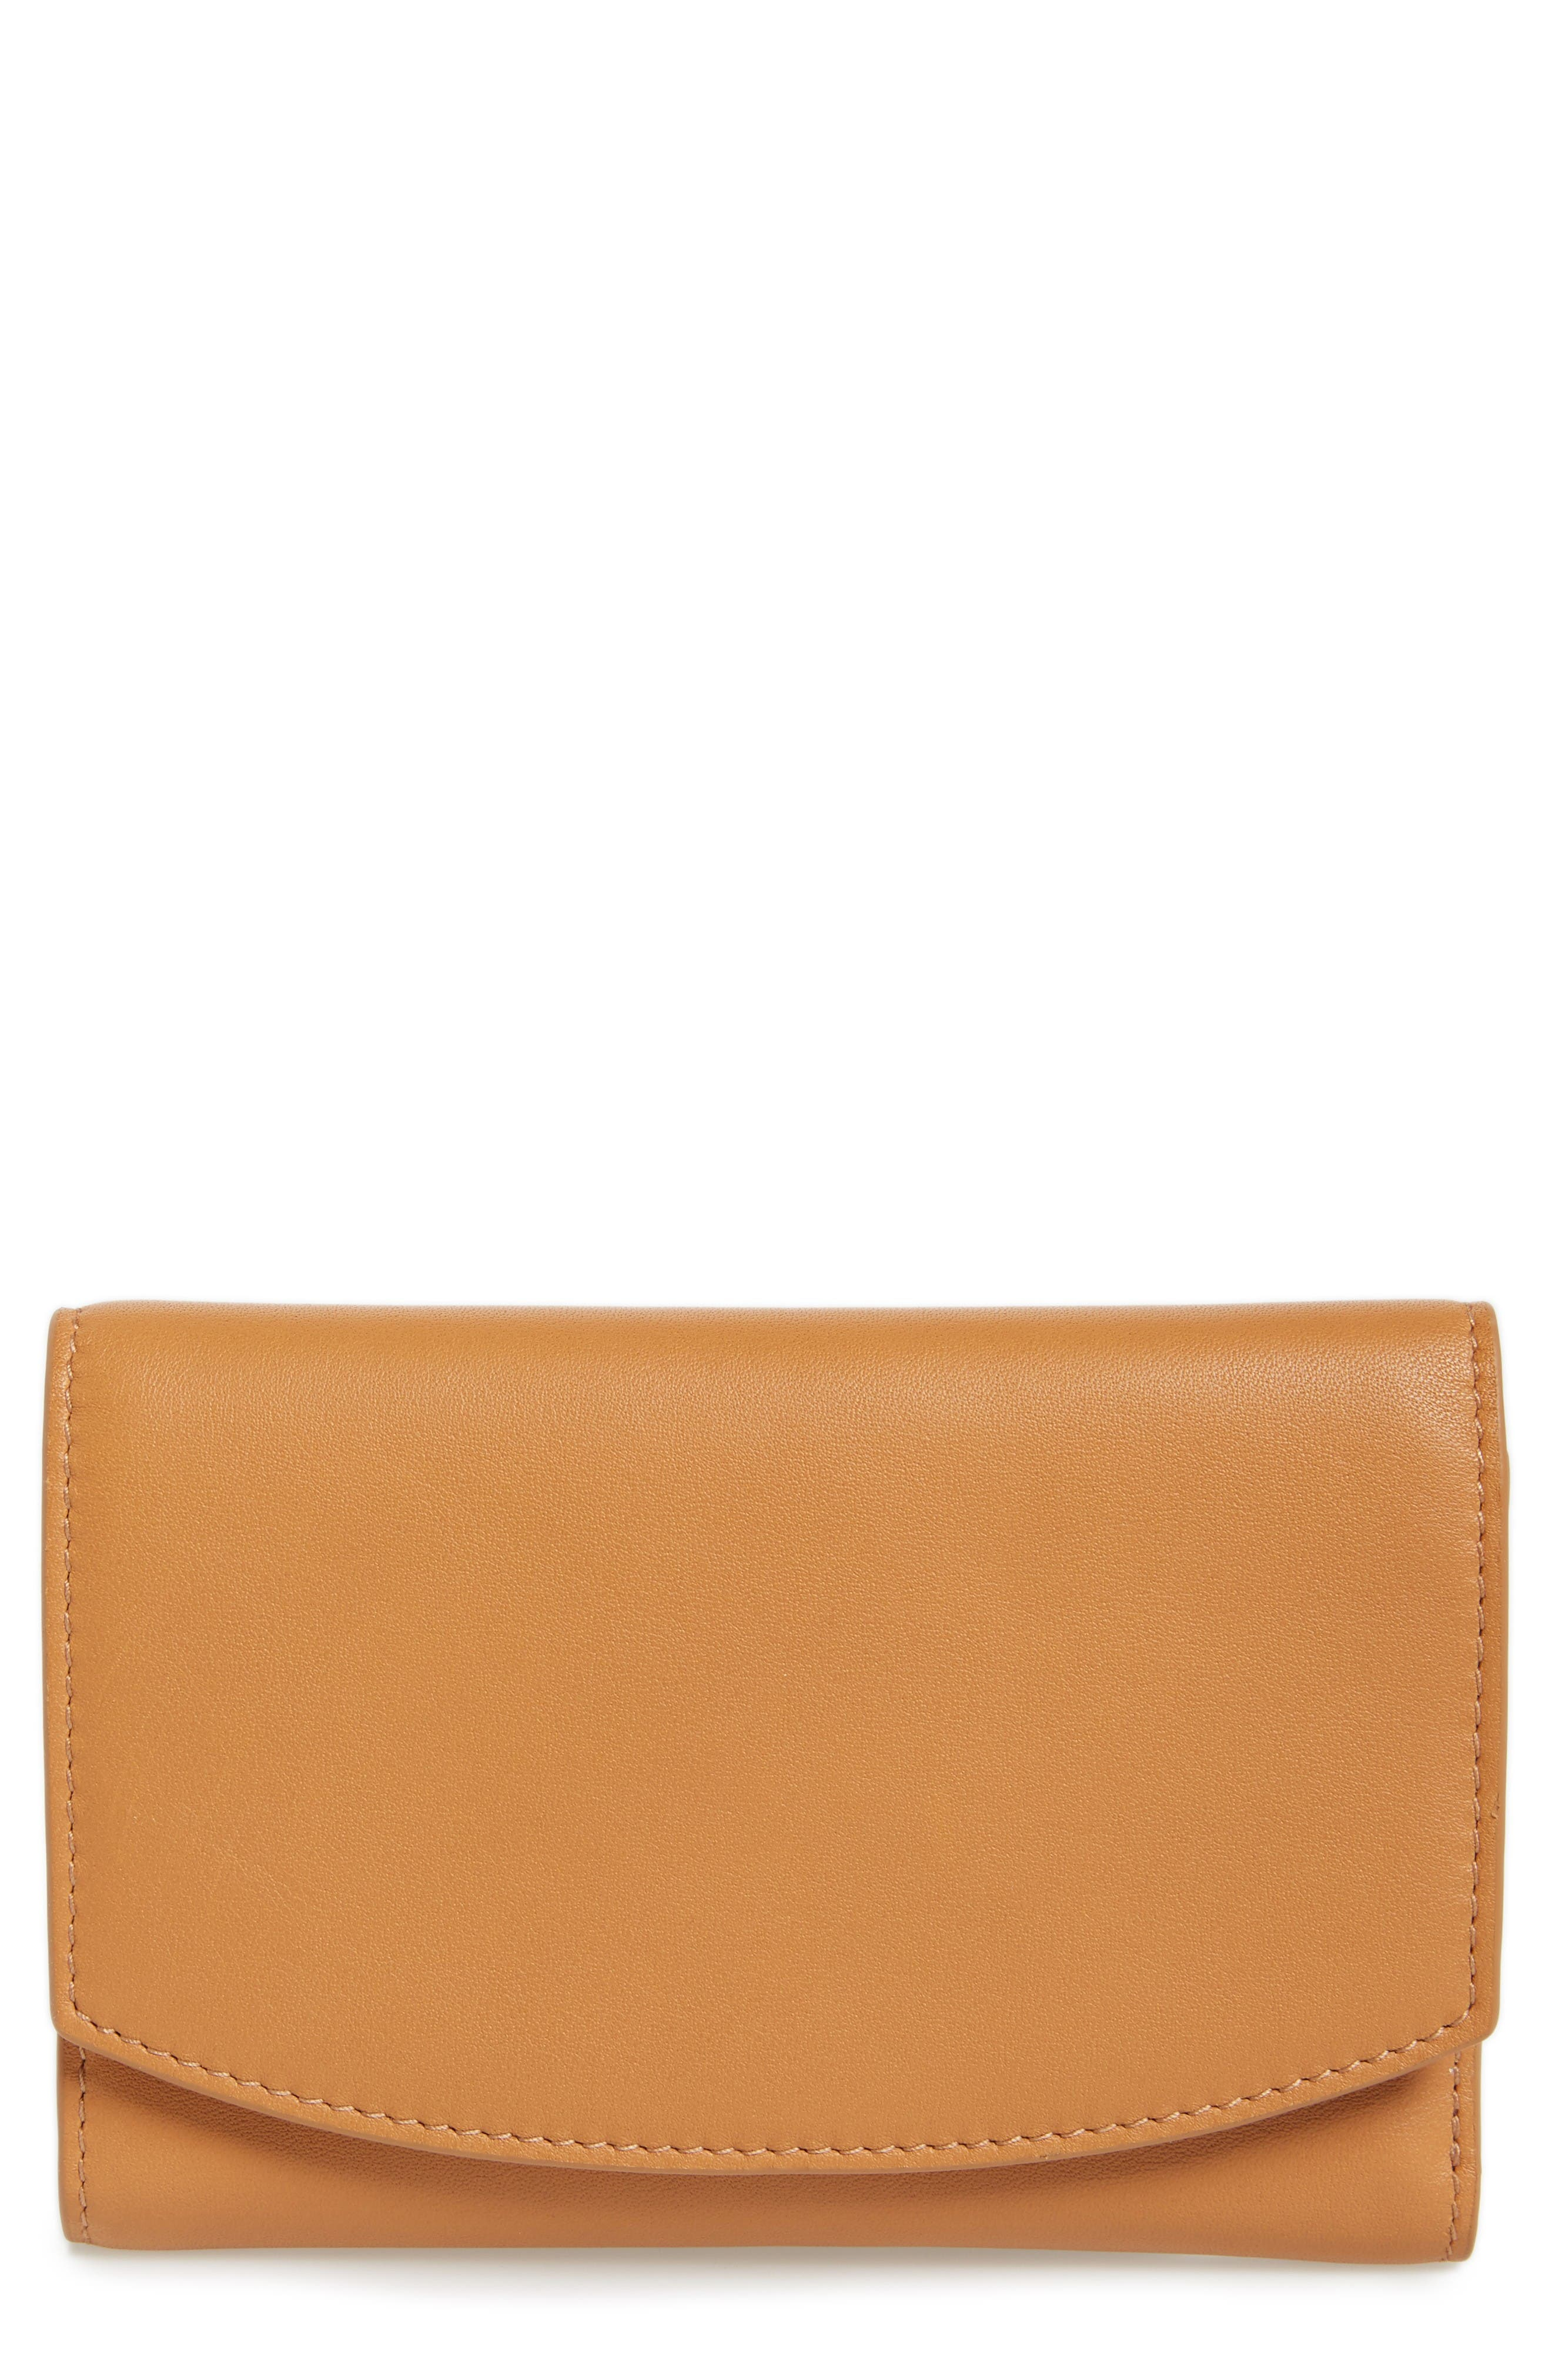 Alternate Image 1 Selected - Skagen Compact Leather Flap Wallet